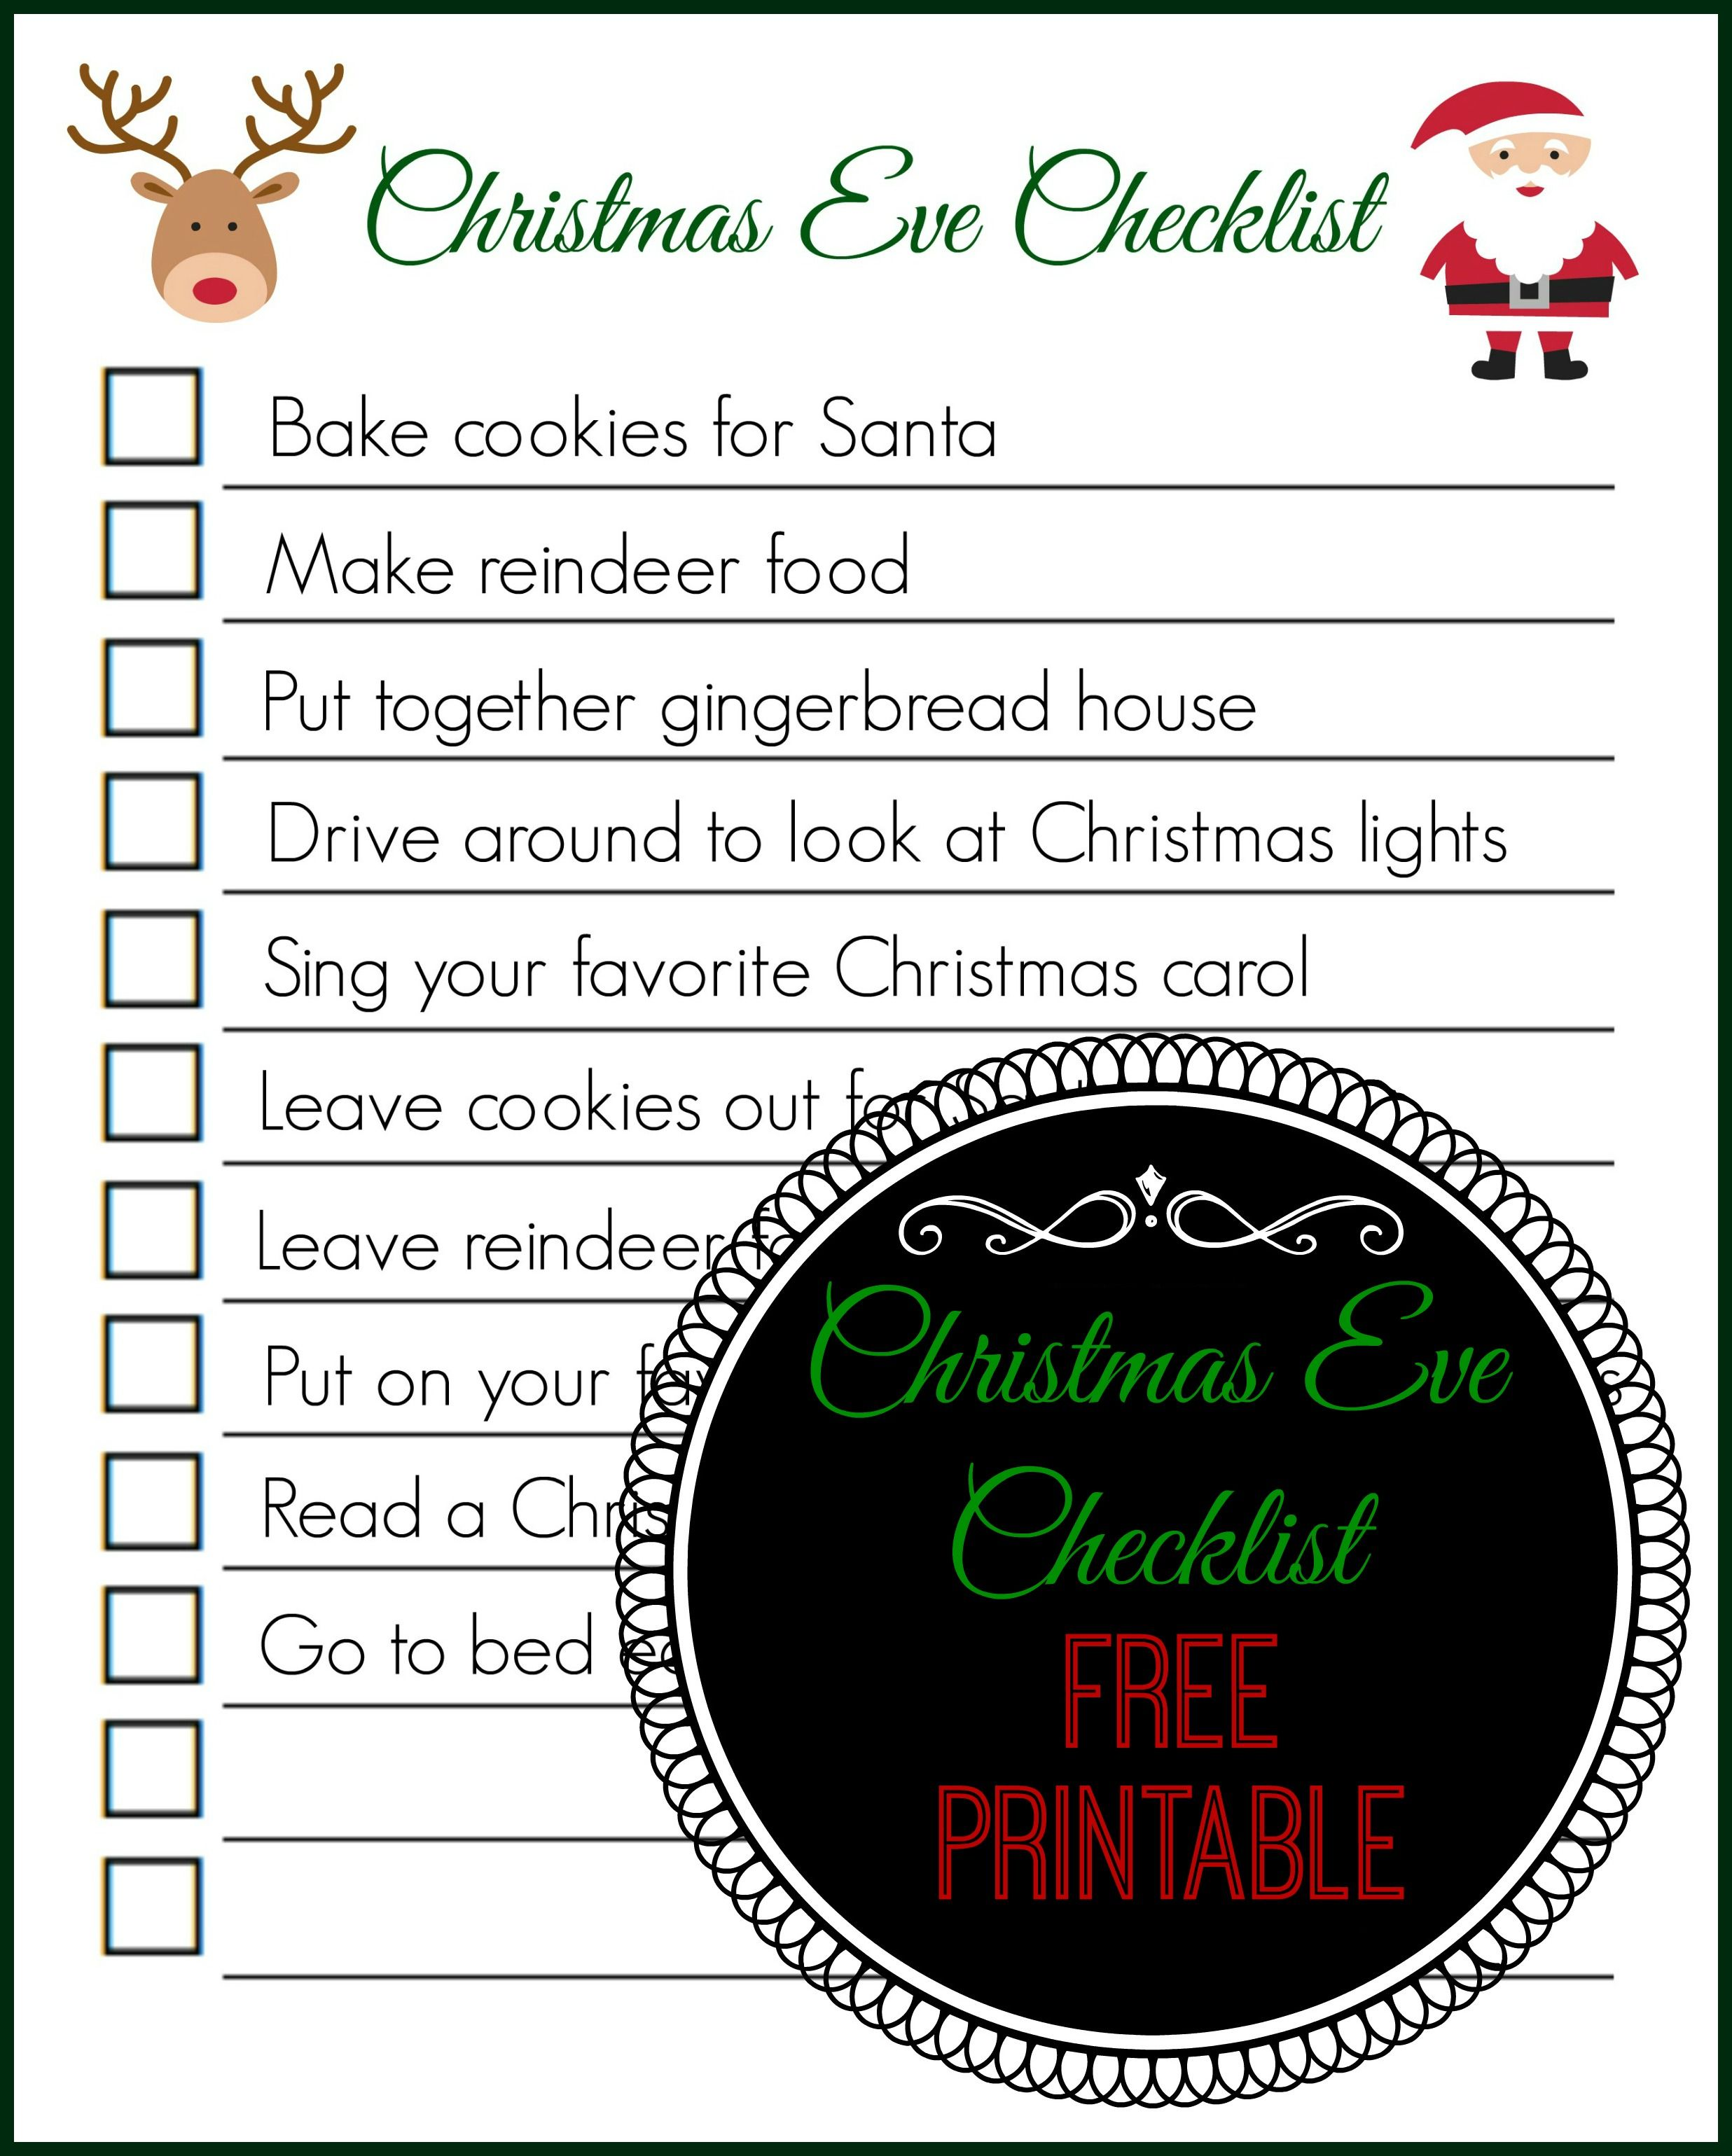 Things To Do On Christmas Eve.Christmas Eve Checklist Free Printable The Naughty Mommy